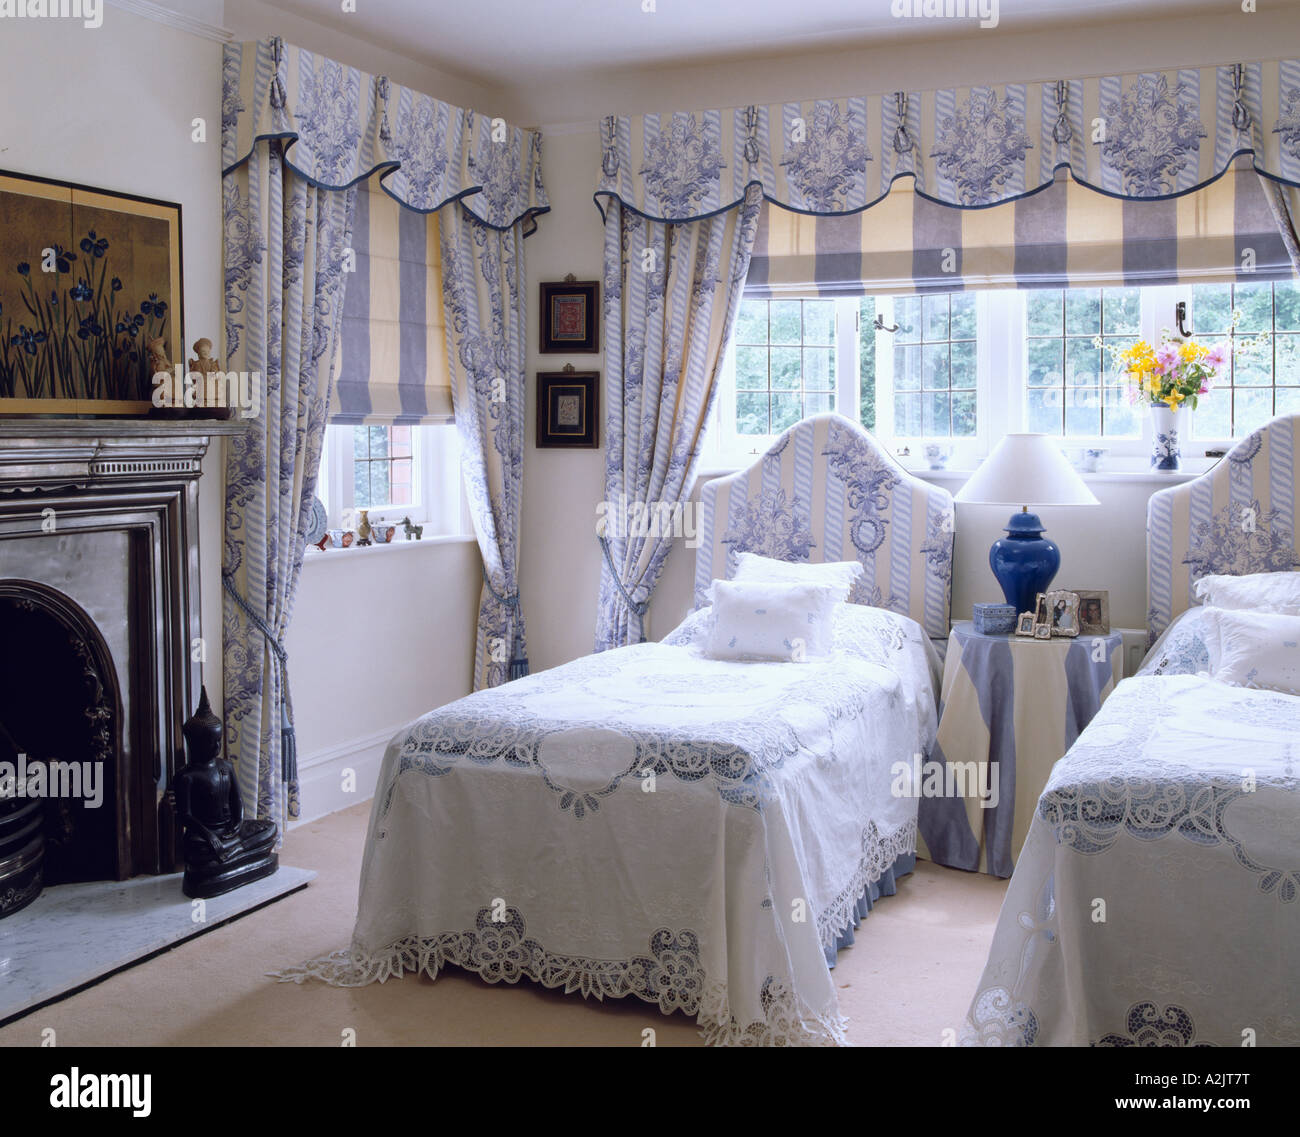 Striped Bedroom Curtains Bedroom With Floral Linen And Curtains And Striped Blinds Stock